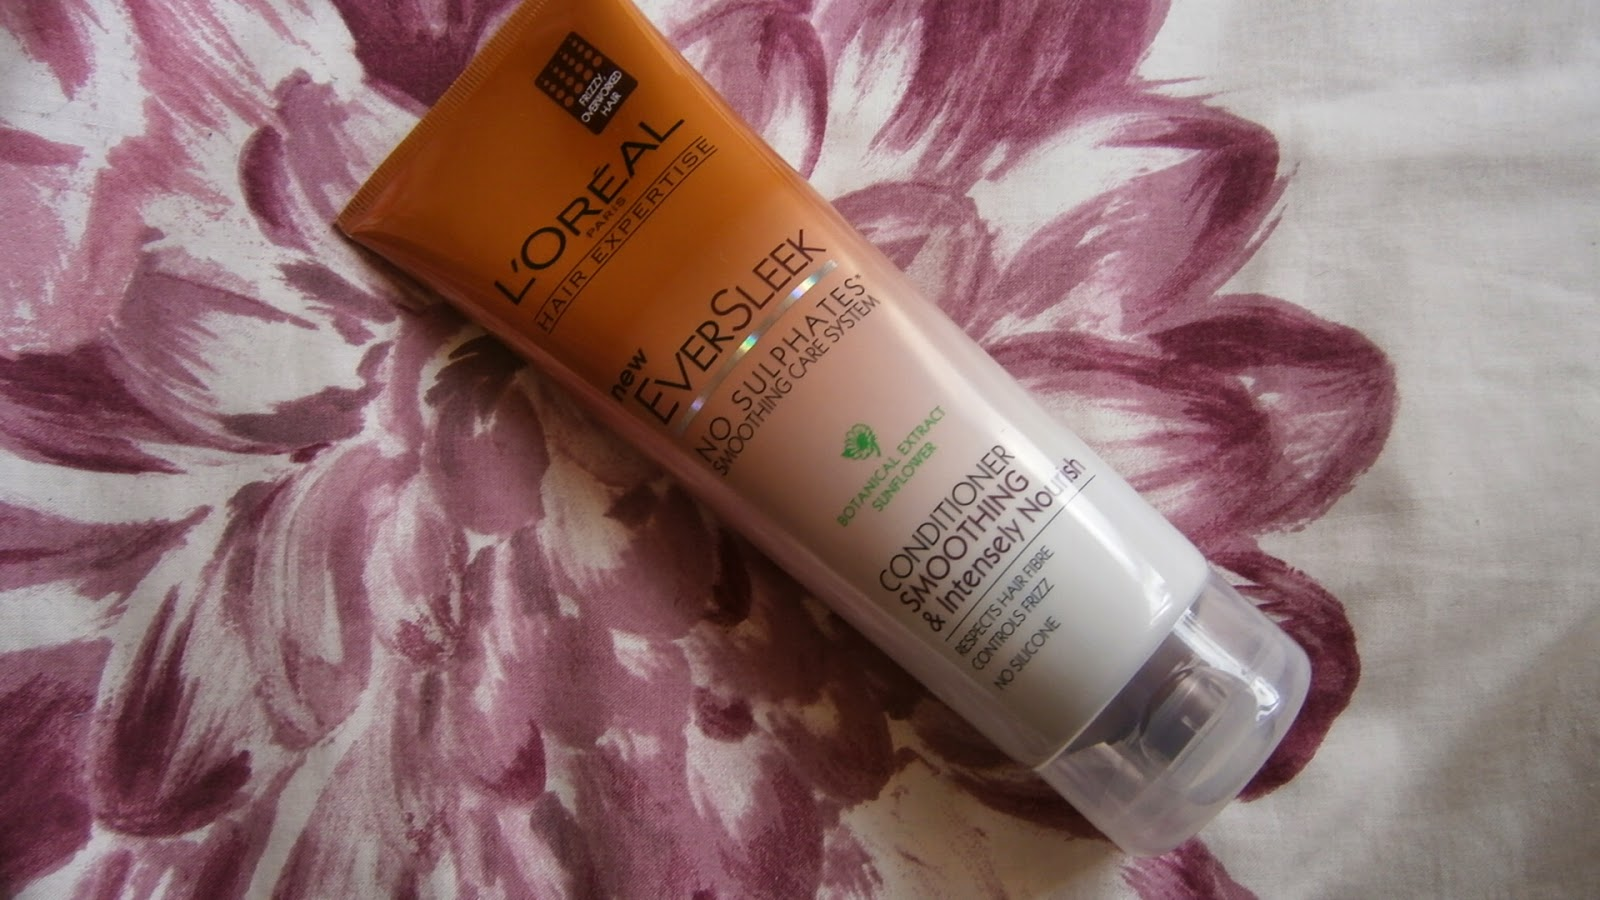 L'Oreal Ever Conditioner review